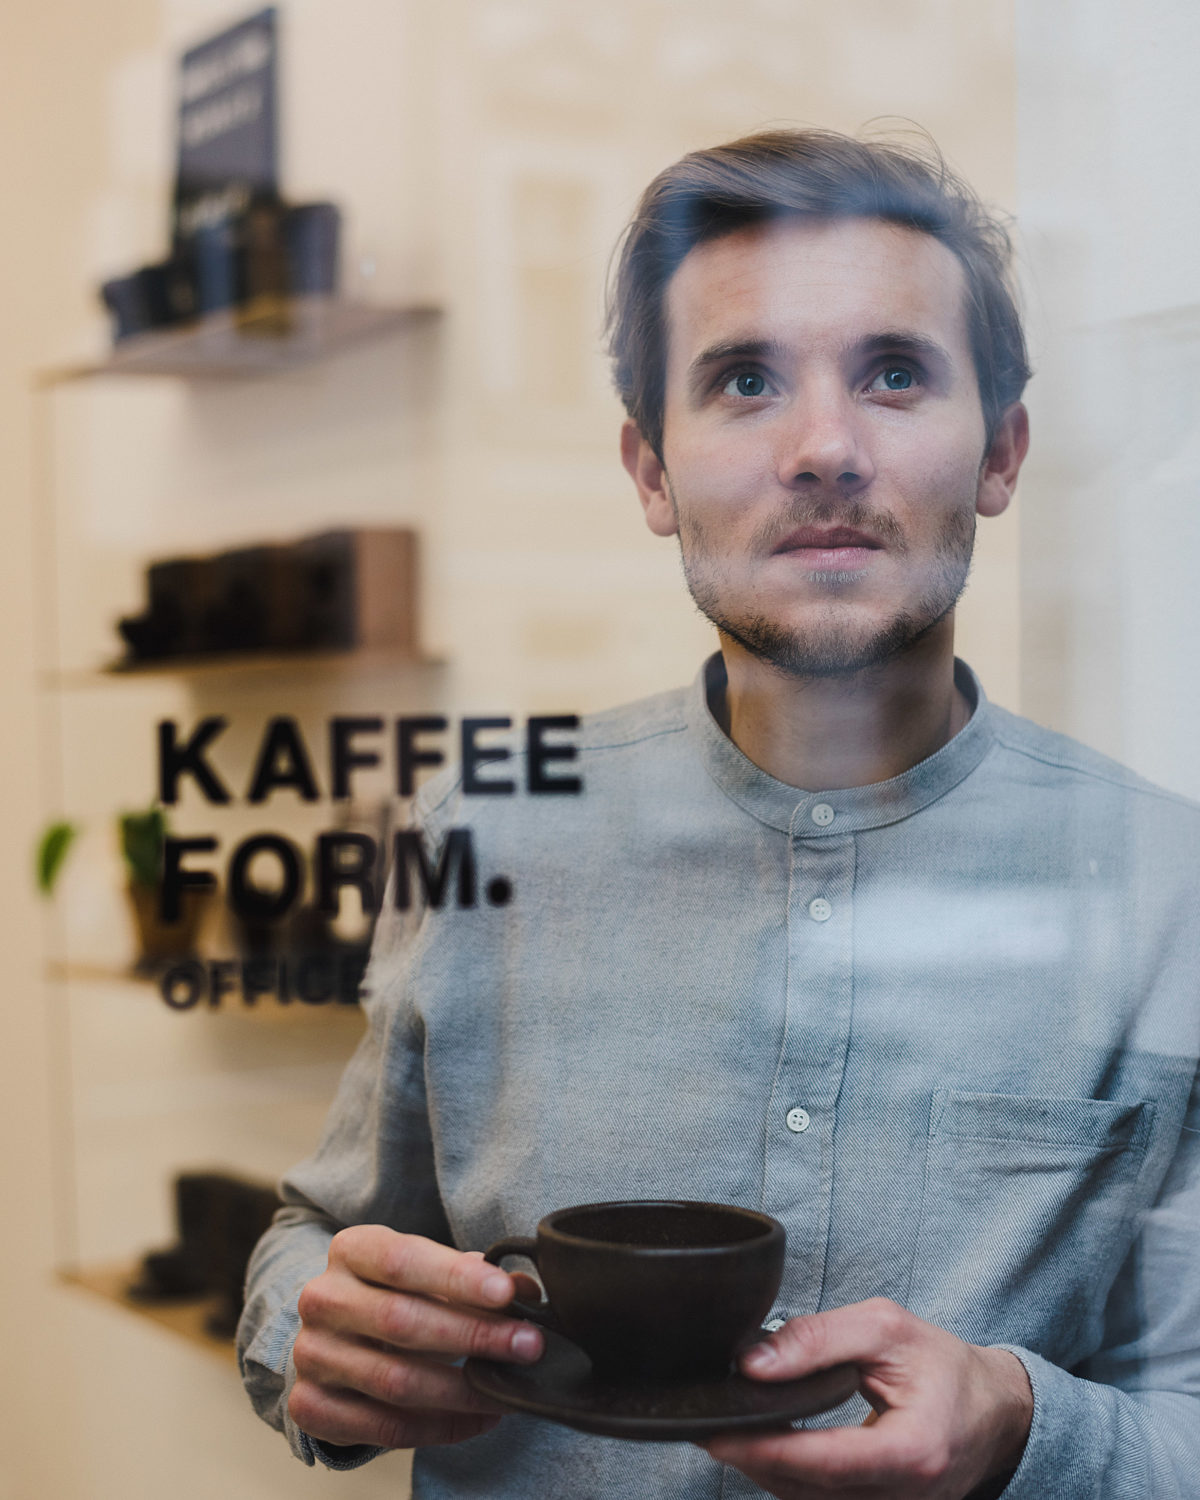 Kaffeeform Julian Lechner c Luke Marshall Johnson 5